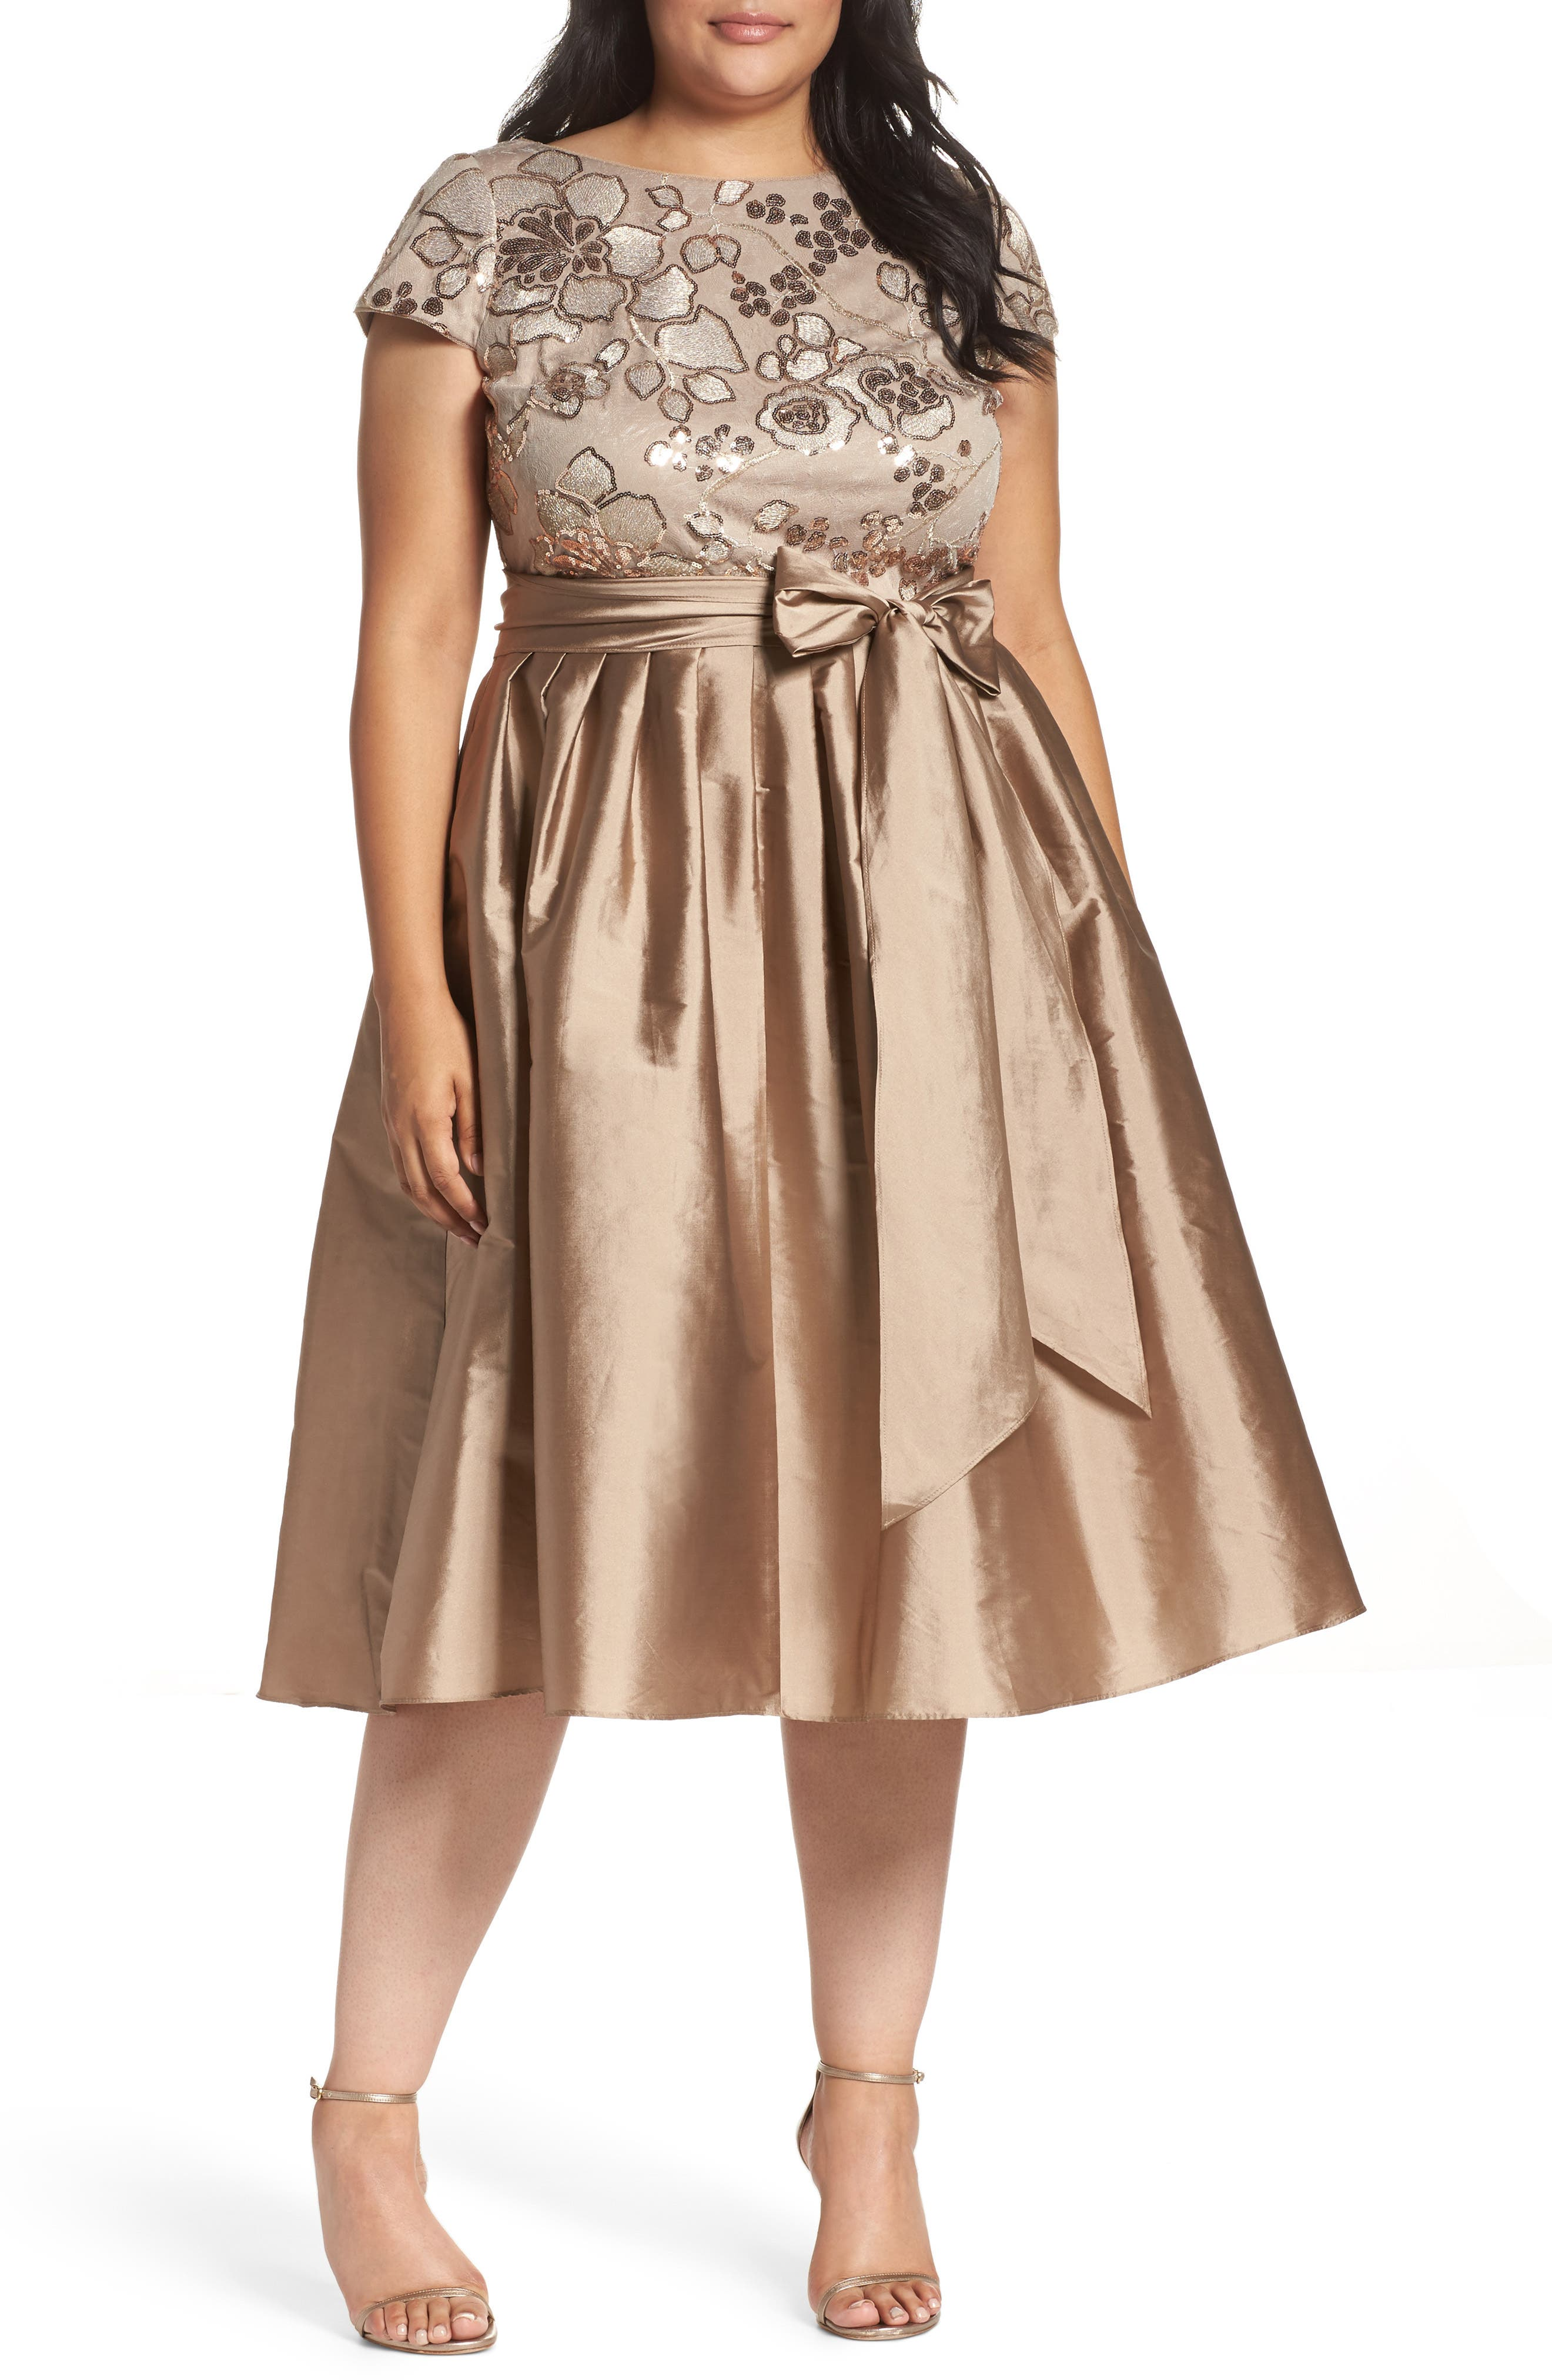 Alternate Image 1 Selected - Adrianna Papell Embellished Bodice Party Dress (Plus Size)